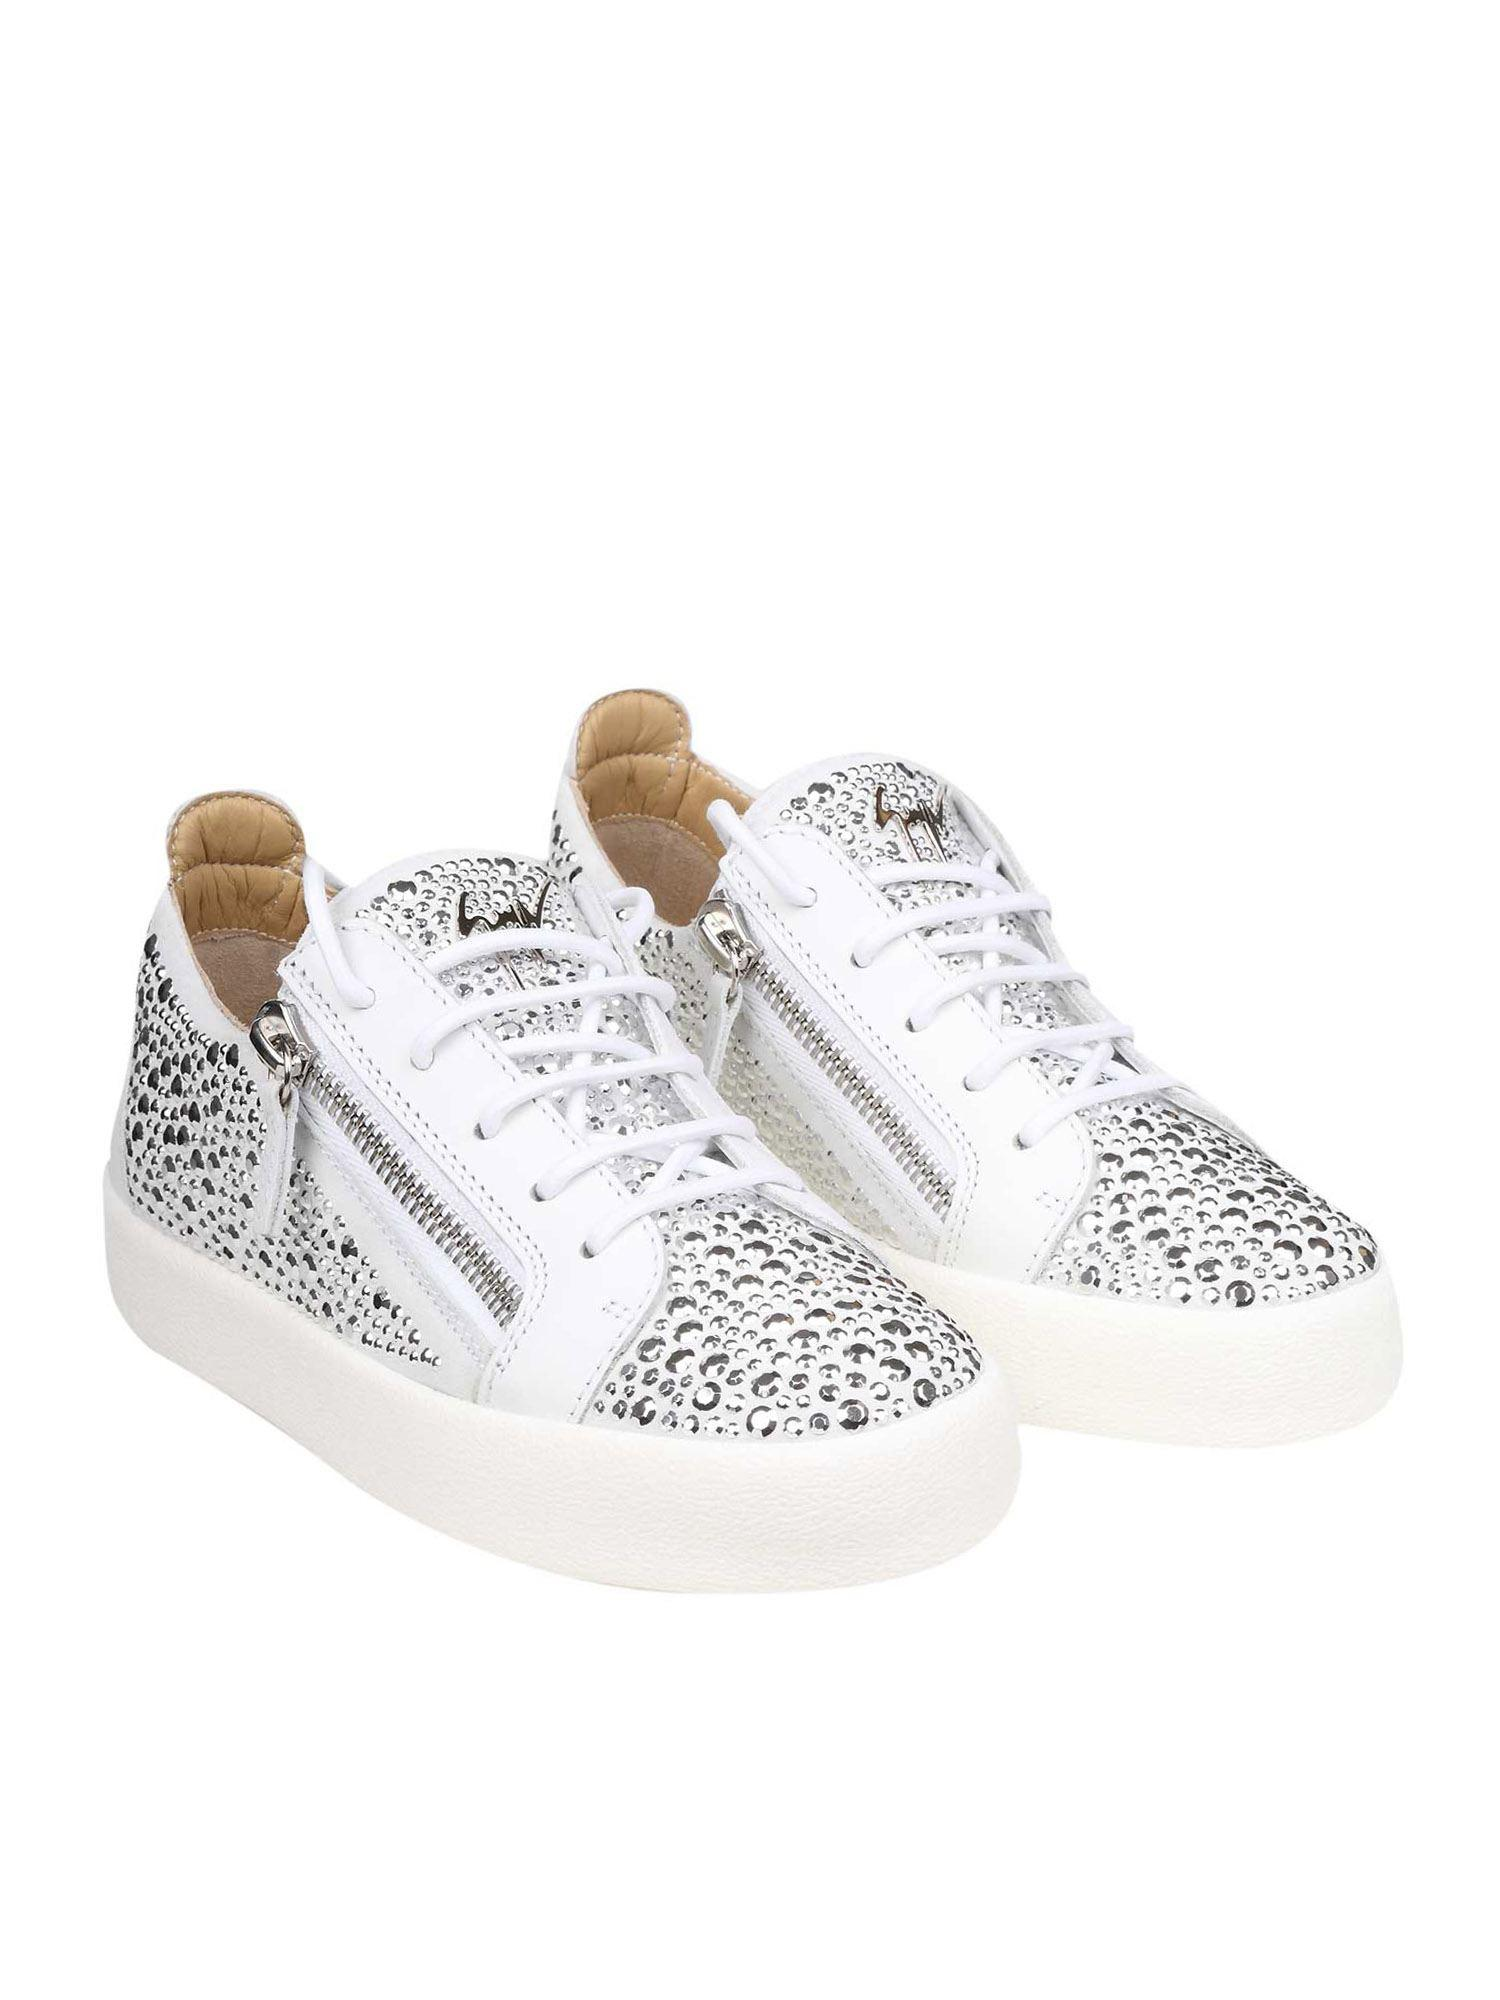 e9dd484ad869 Giuseppe Zanotti Gail Crystal White Leather Sneakers in White - Lyst